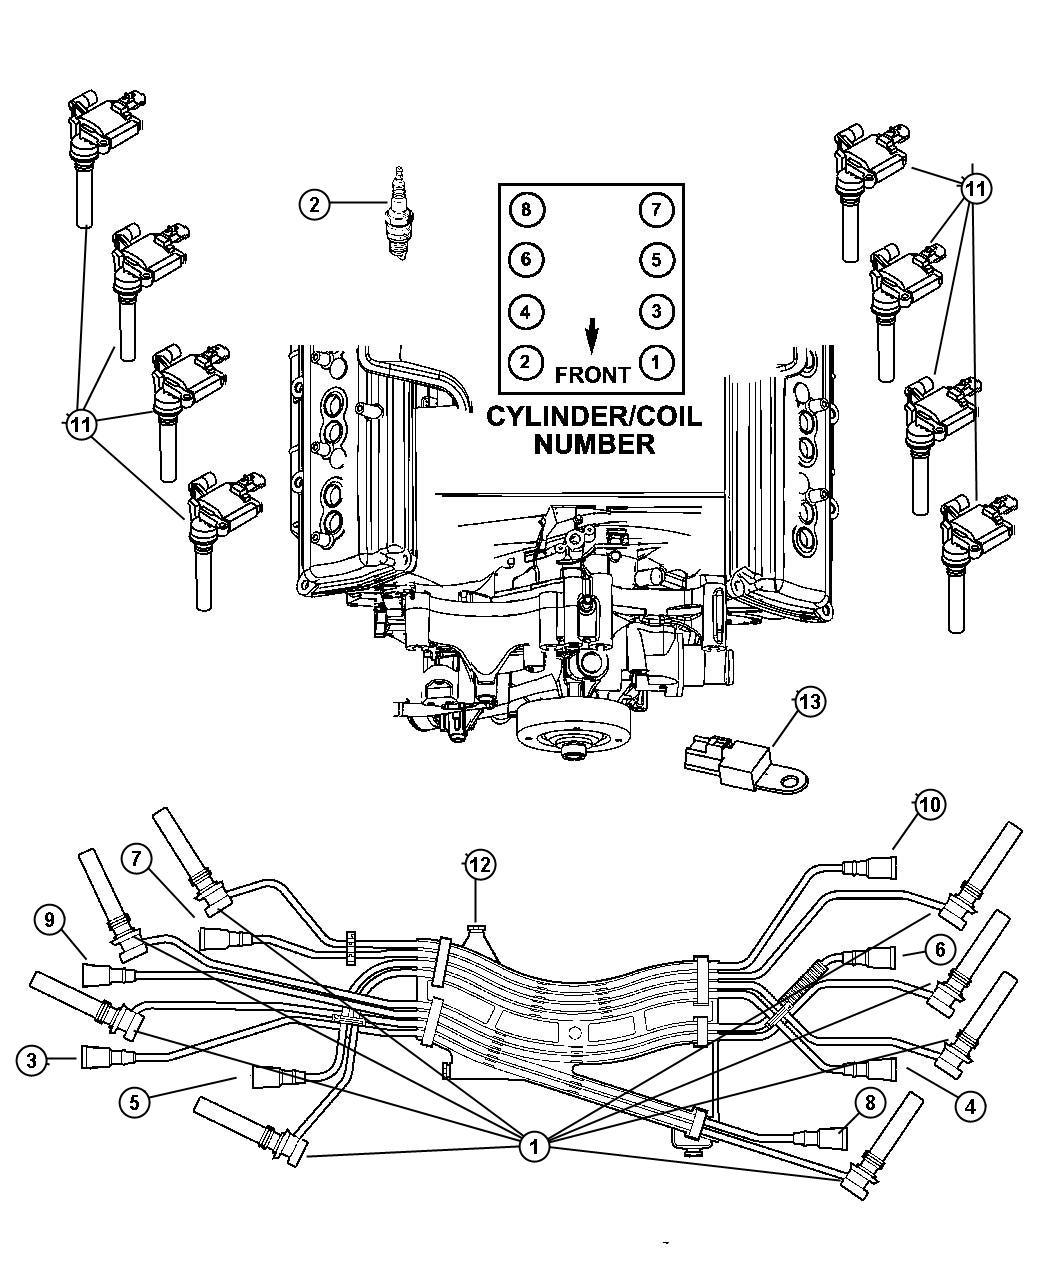 2008 dodge charger engine diagram yh 4906  diagram of a 2004 5 7 hemi dodge engine  diagram of a 2004 5 7 hemi dodge engine